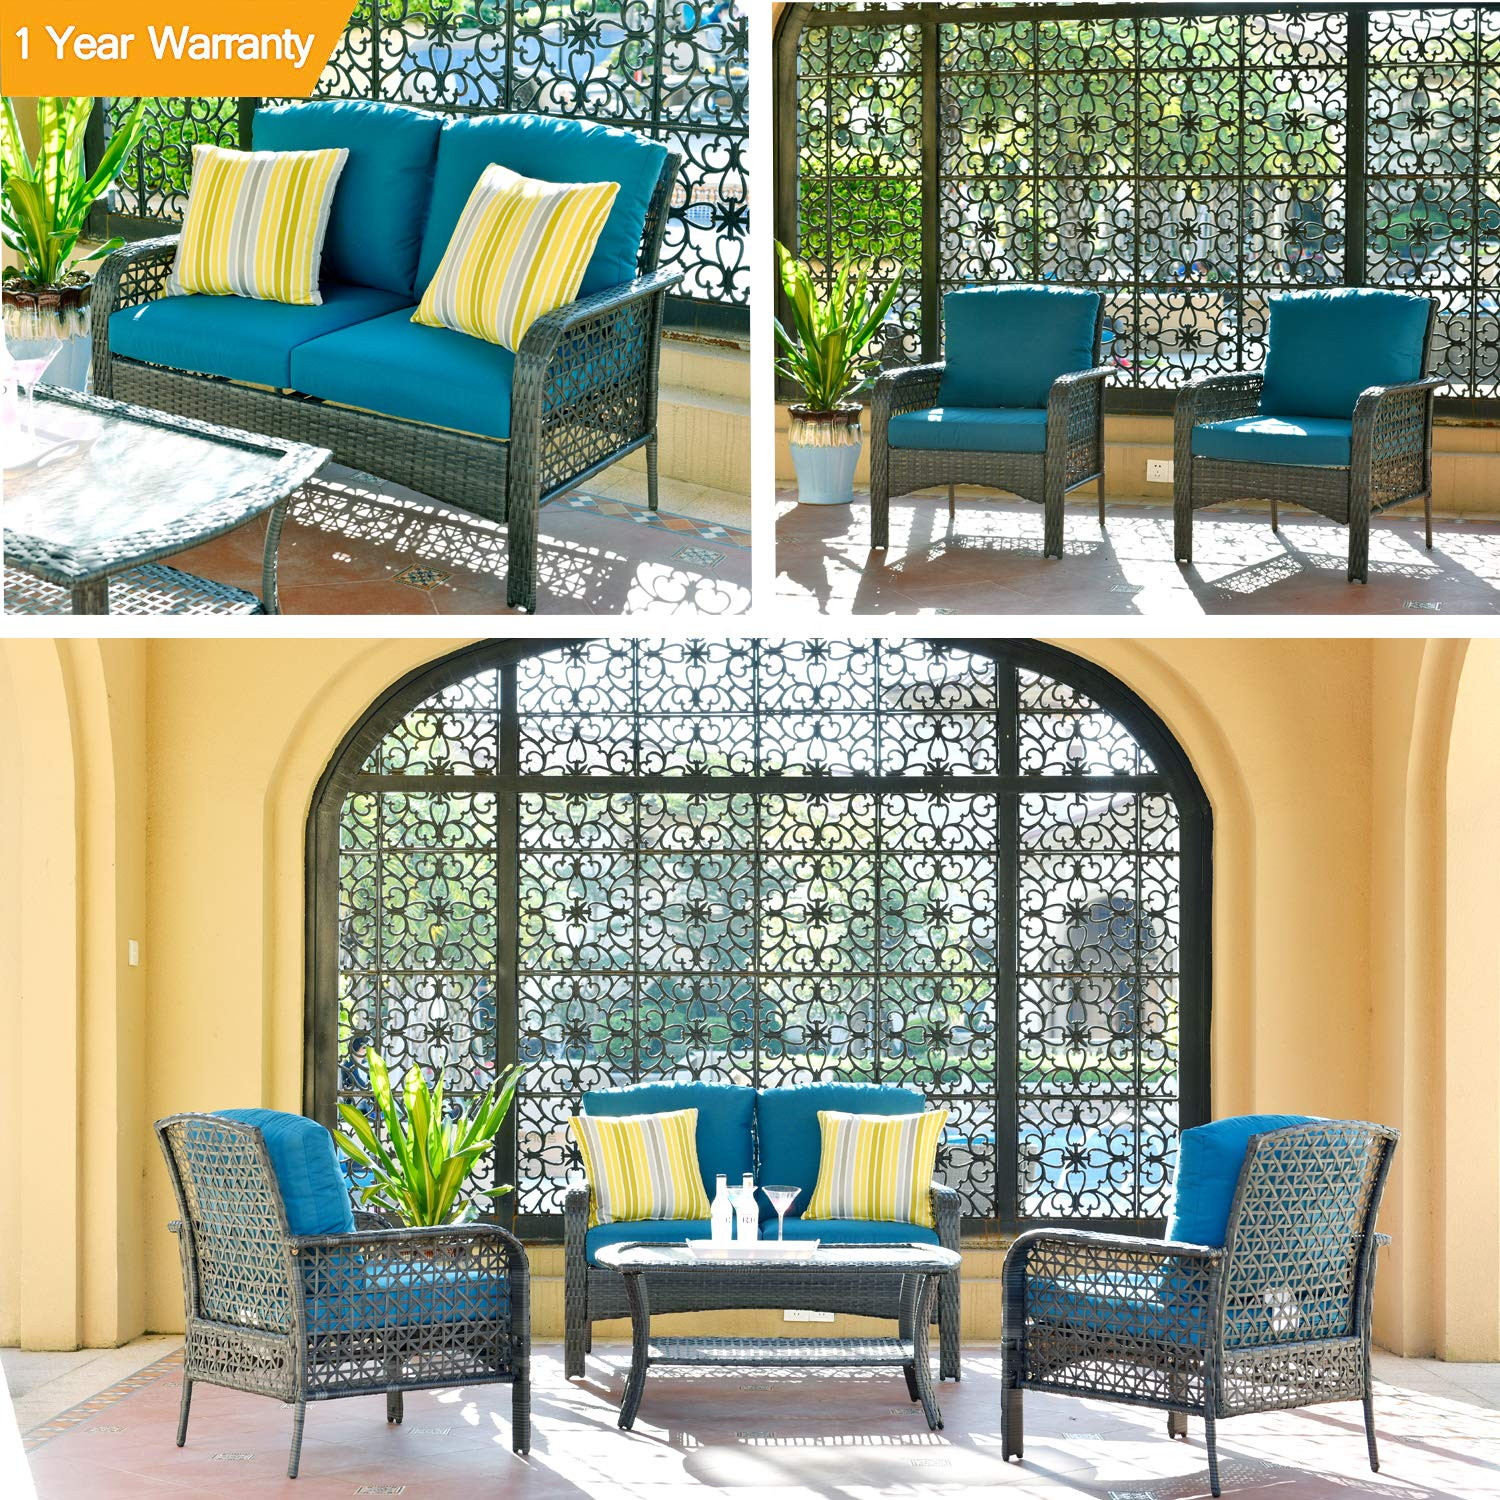 ovios 4 PCs Patio Furniture Sets All Weather Water-Resistant and UV Resistant Rattan Wicker Deep Seating Outdoor Sofa Conversation Set with Cushions,Table Gray Wicker Navy Blue Cushion